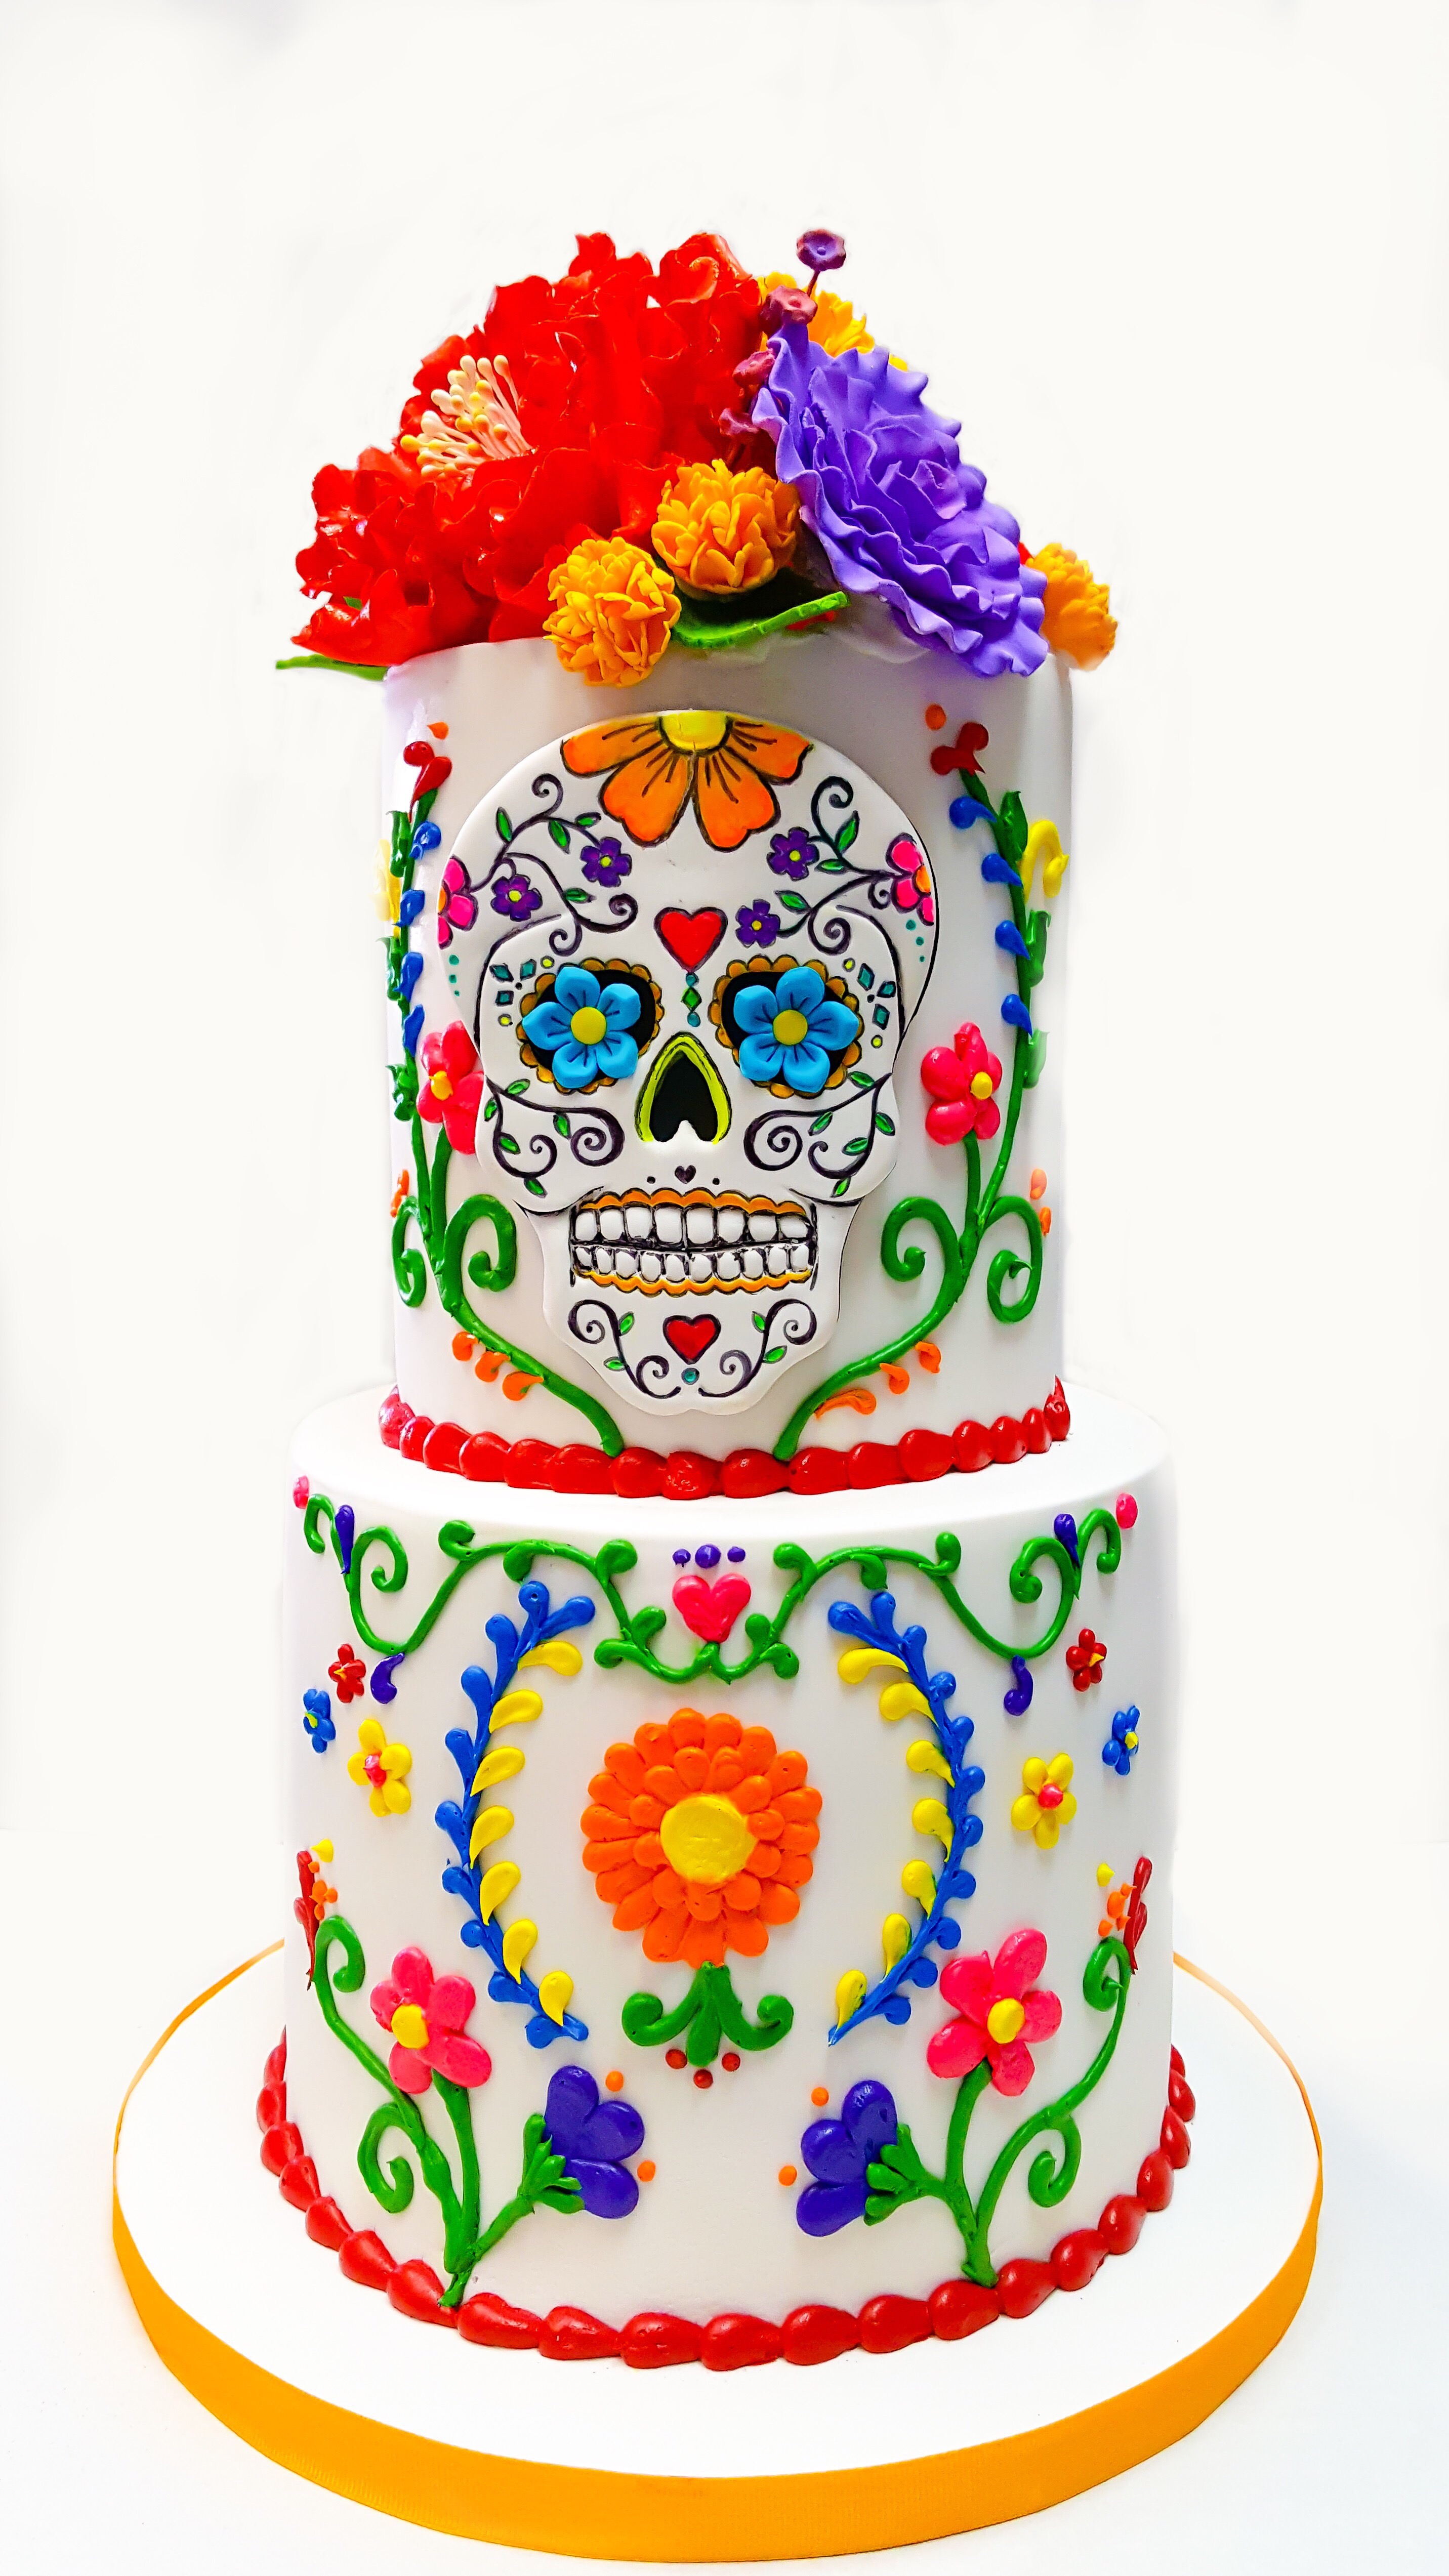 Day of the dead themed cake